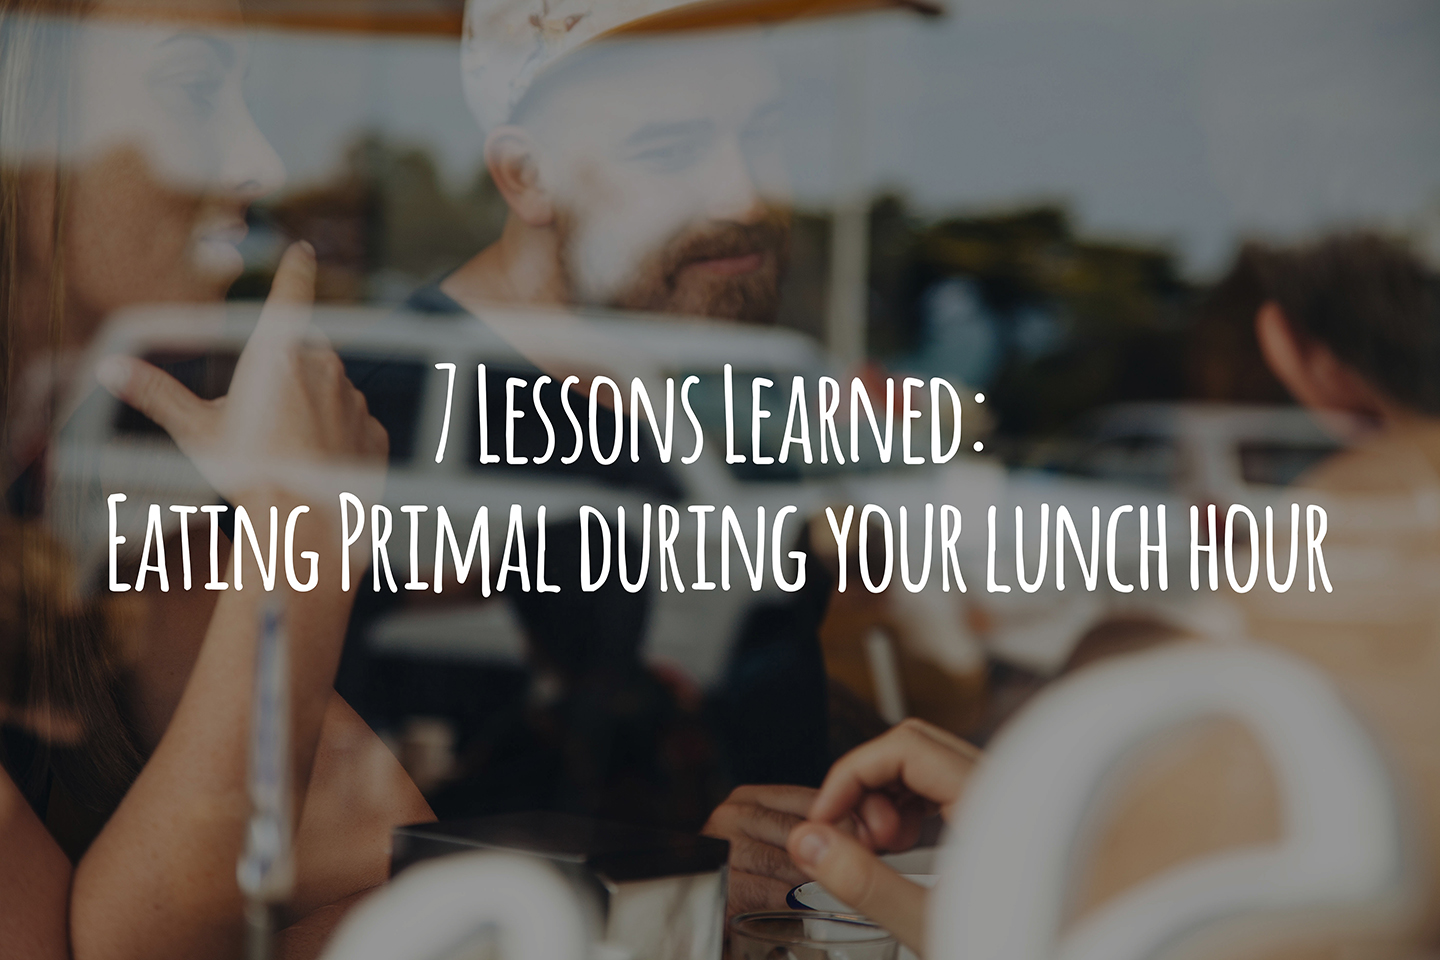 7 Lessons Learned: Eating Primal during your lunch hour